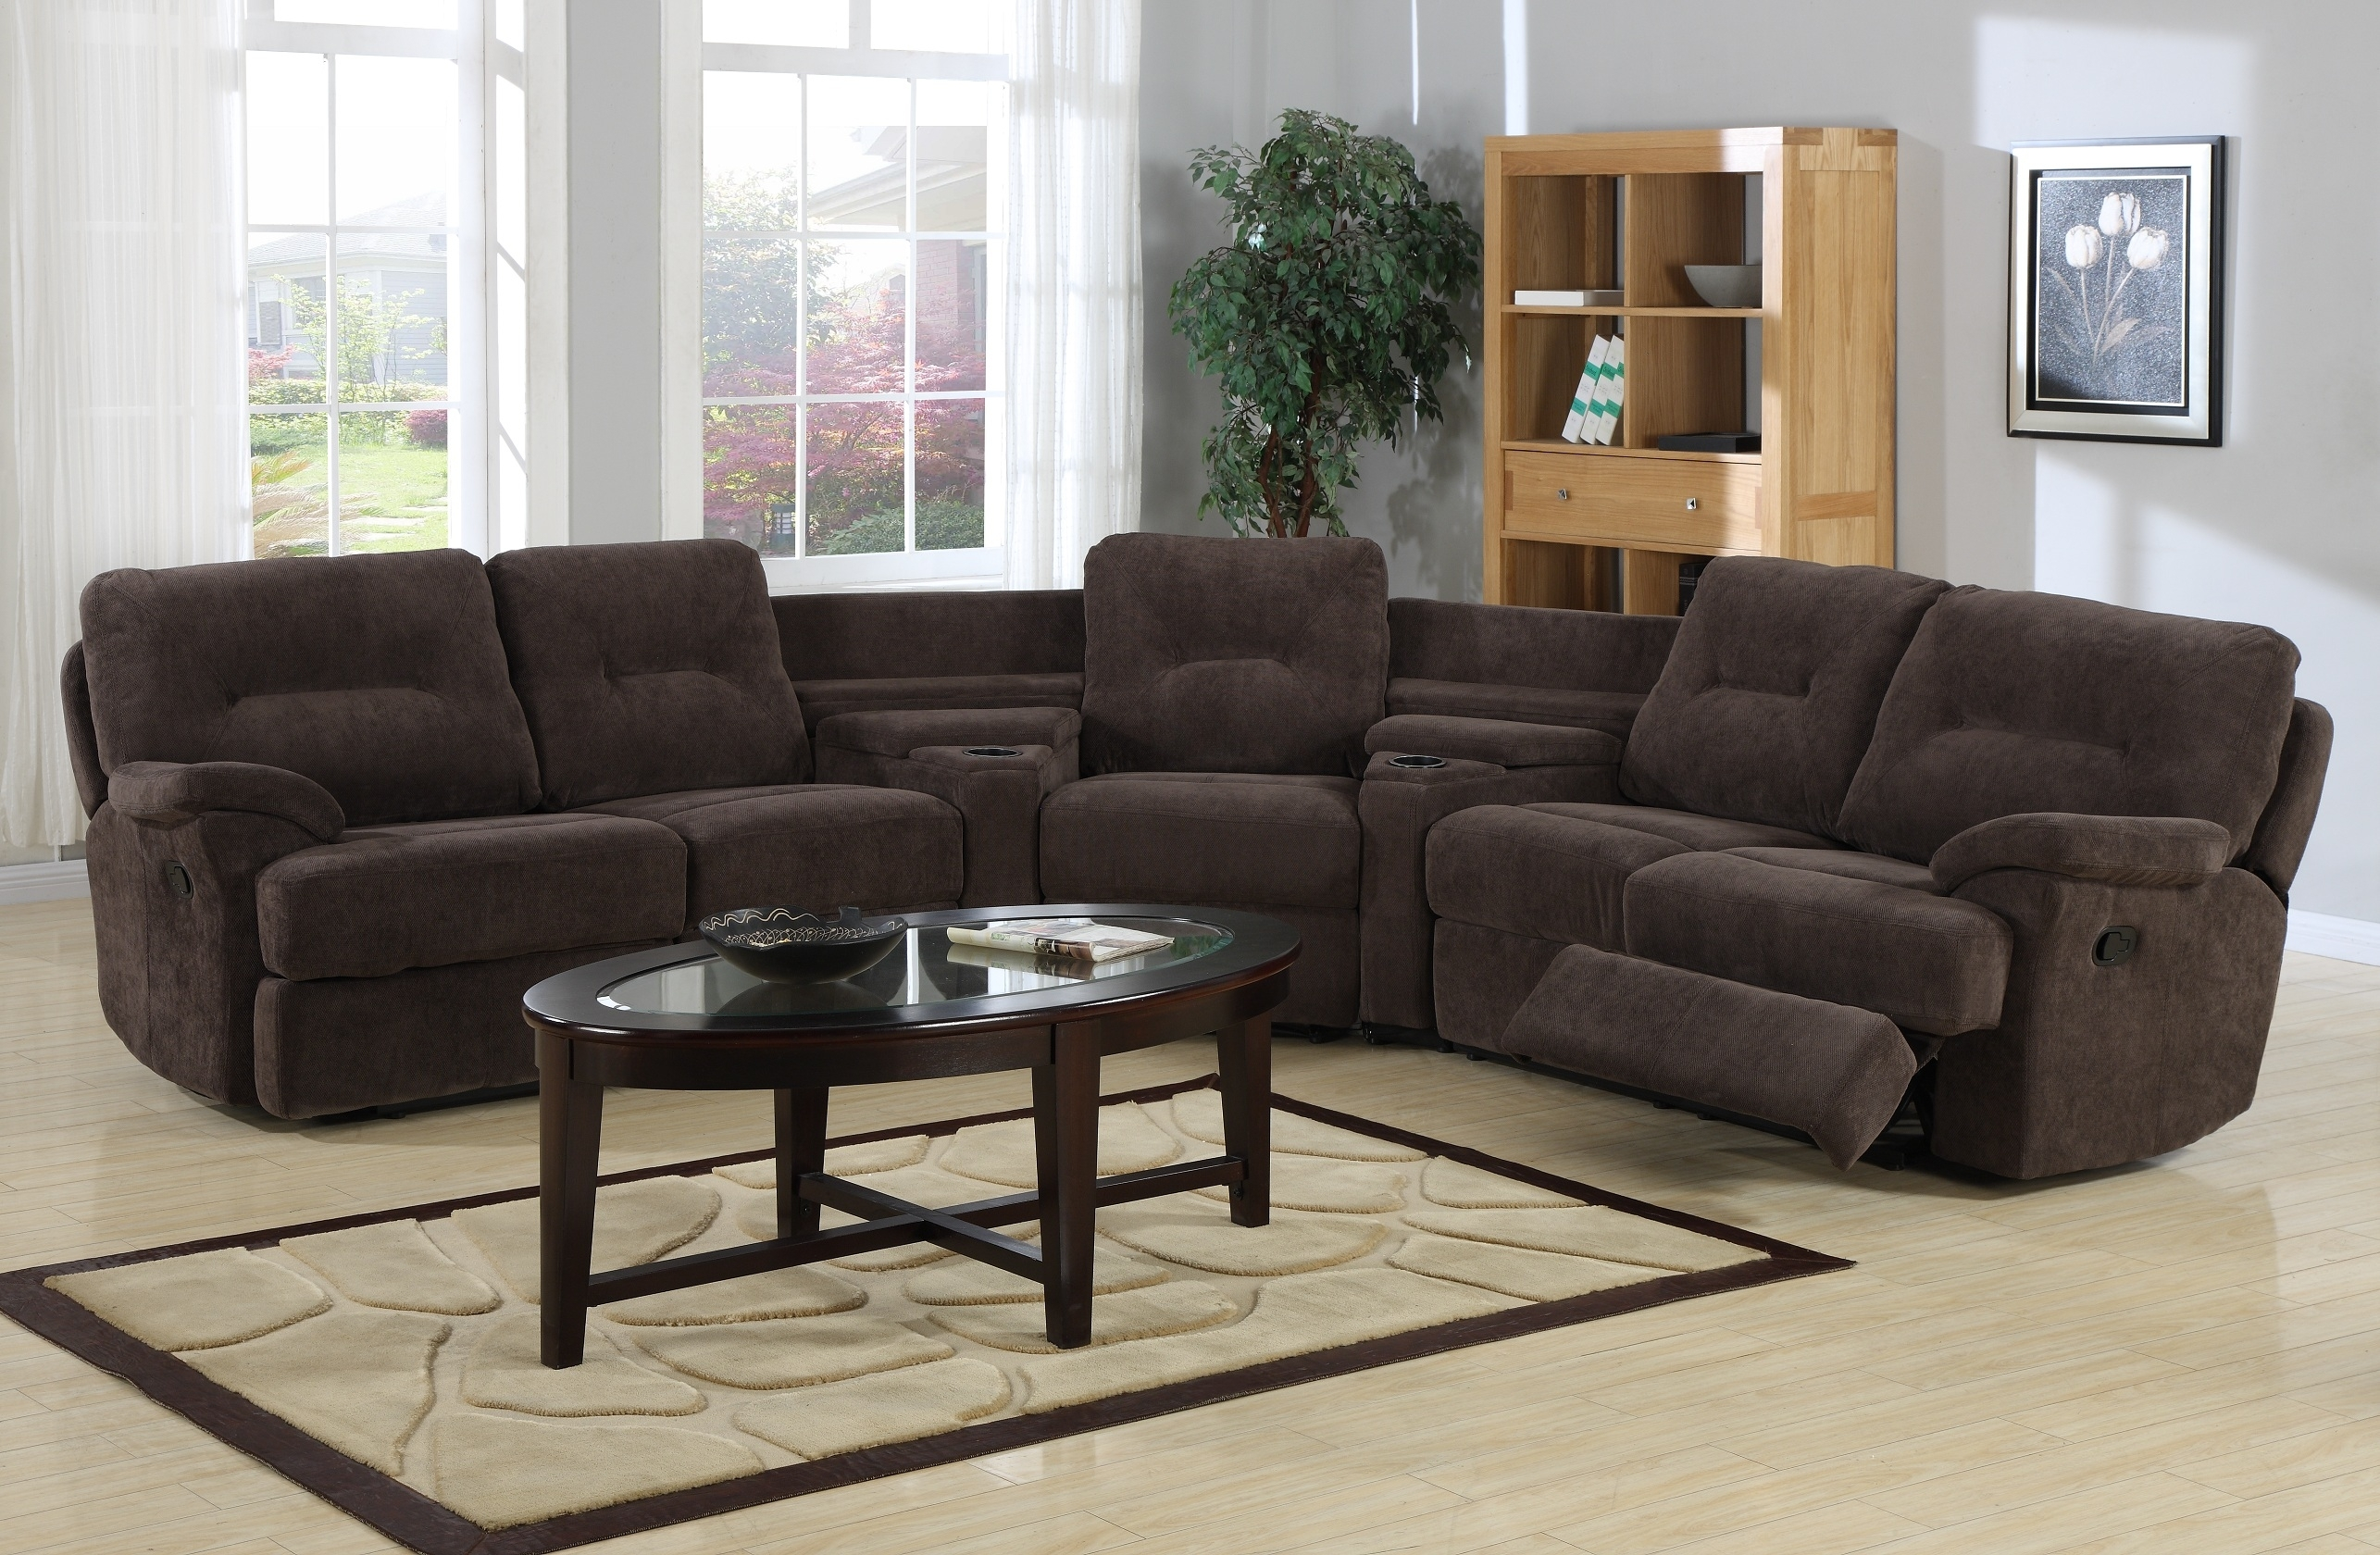 Featured Image of Portland Oregon Sectional Sofas